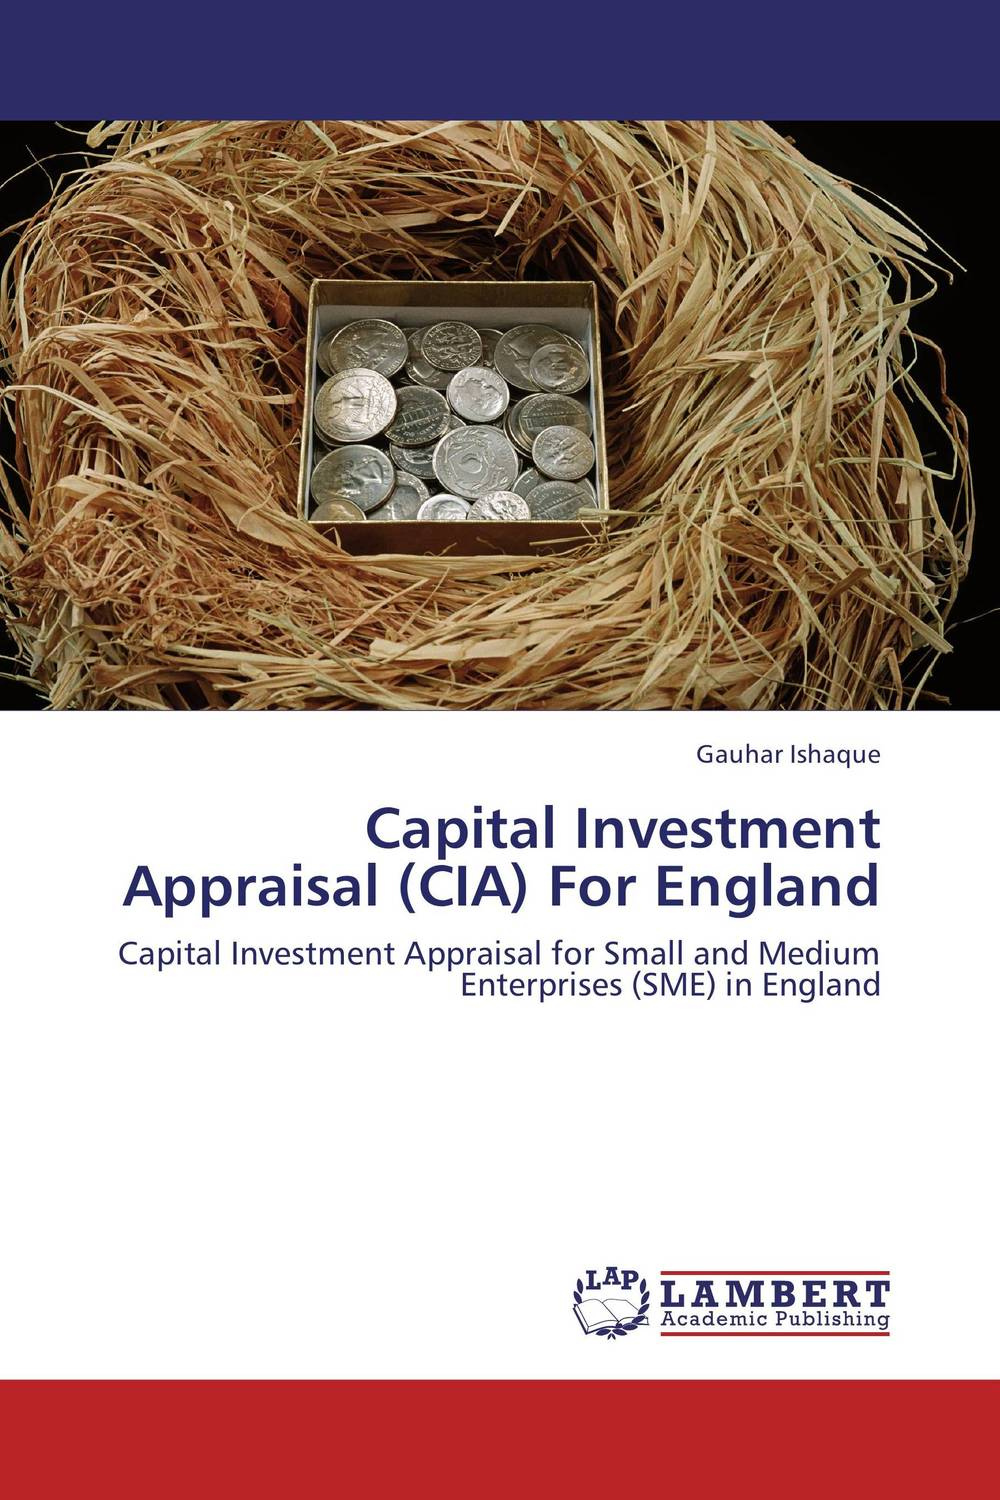 Capital Investment Appraisal (CIA) For England sean casterline d investor s passport to hedge fund profits unique investment strategies for today s global capital markets